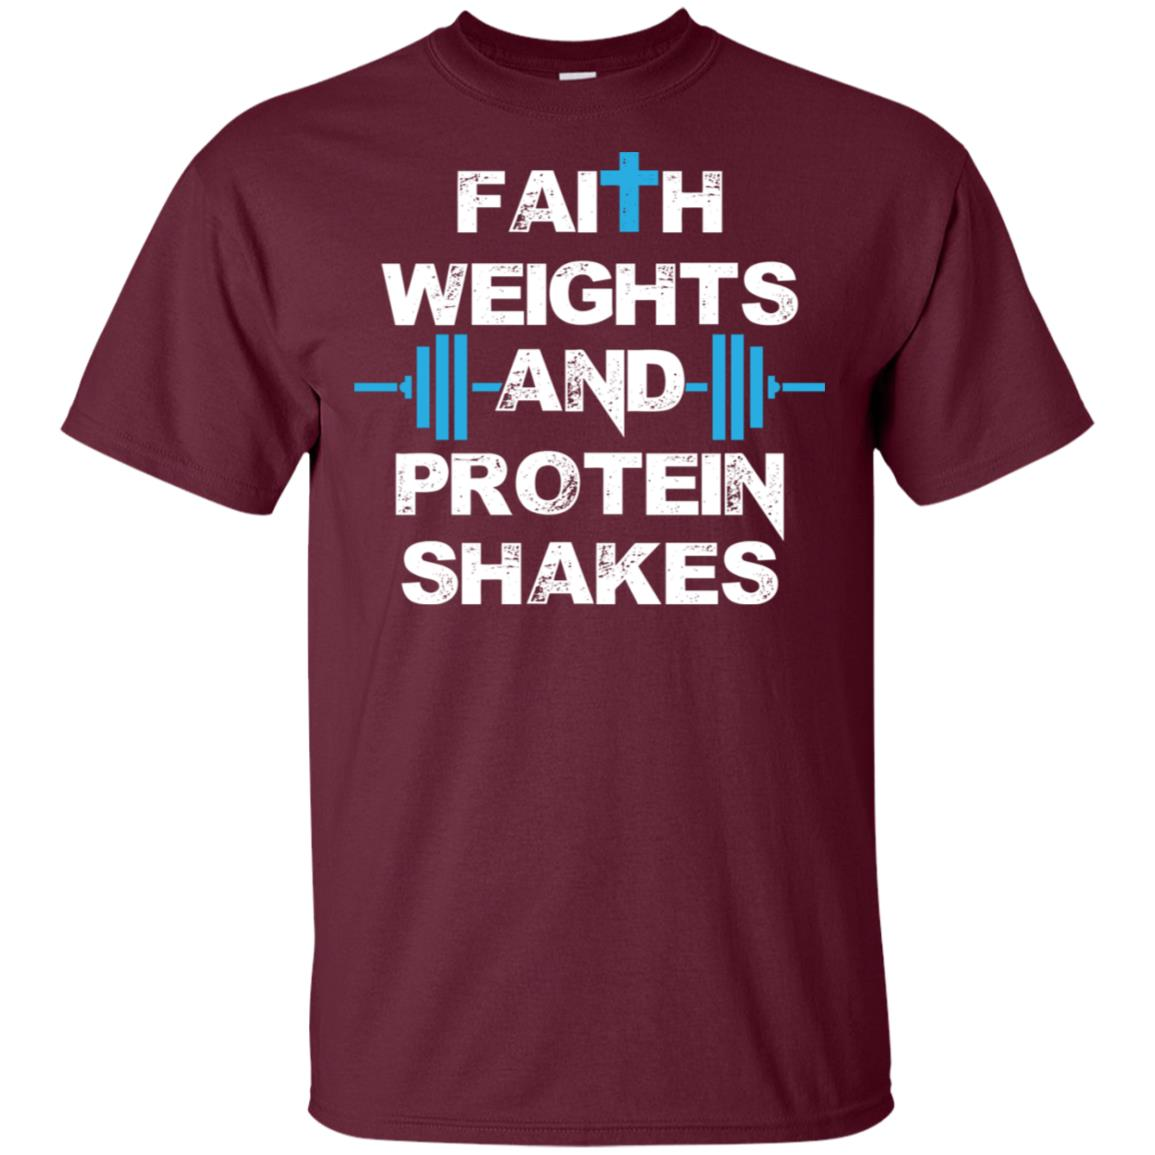 Faith Weights And Protein Shakes Funny Unisex Short Sleeve